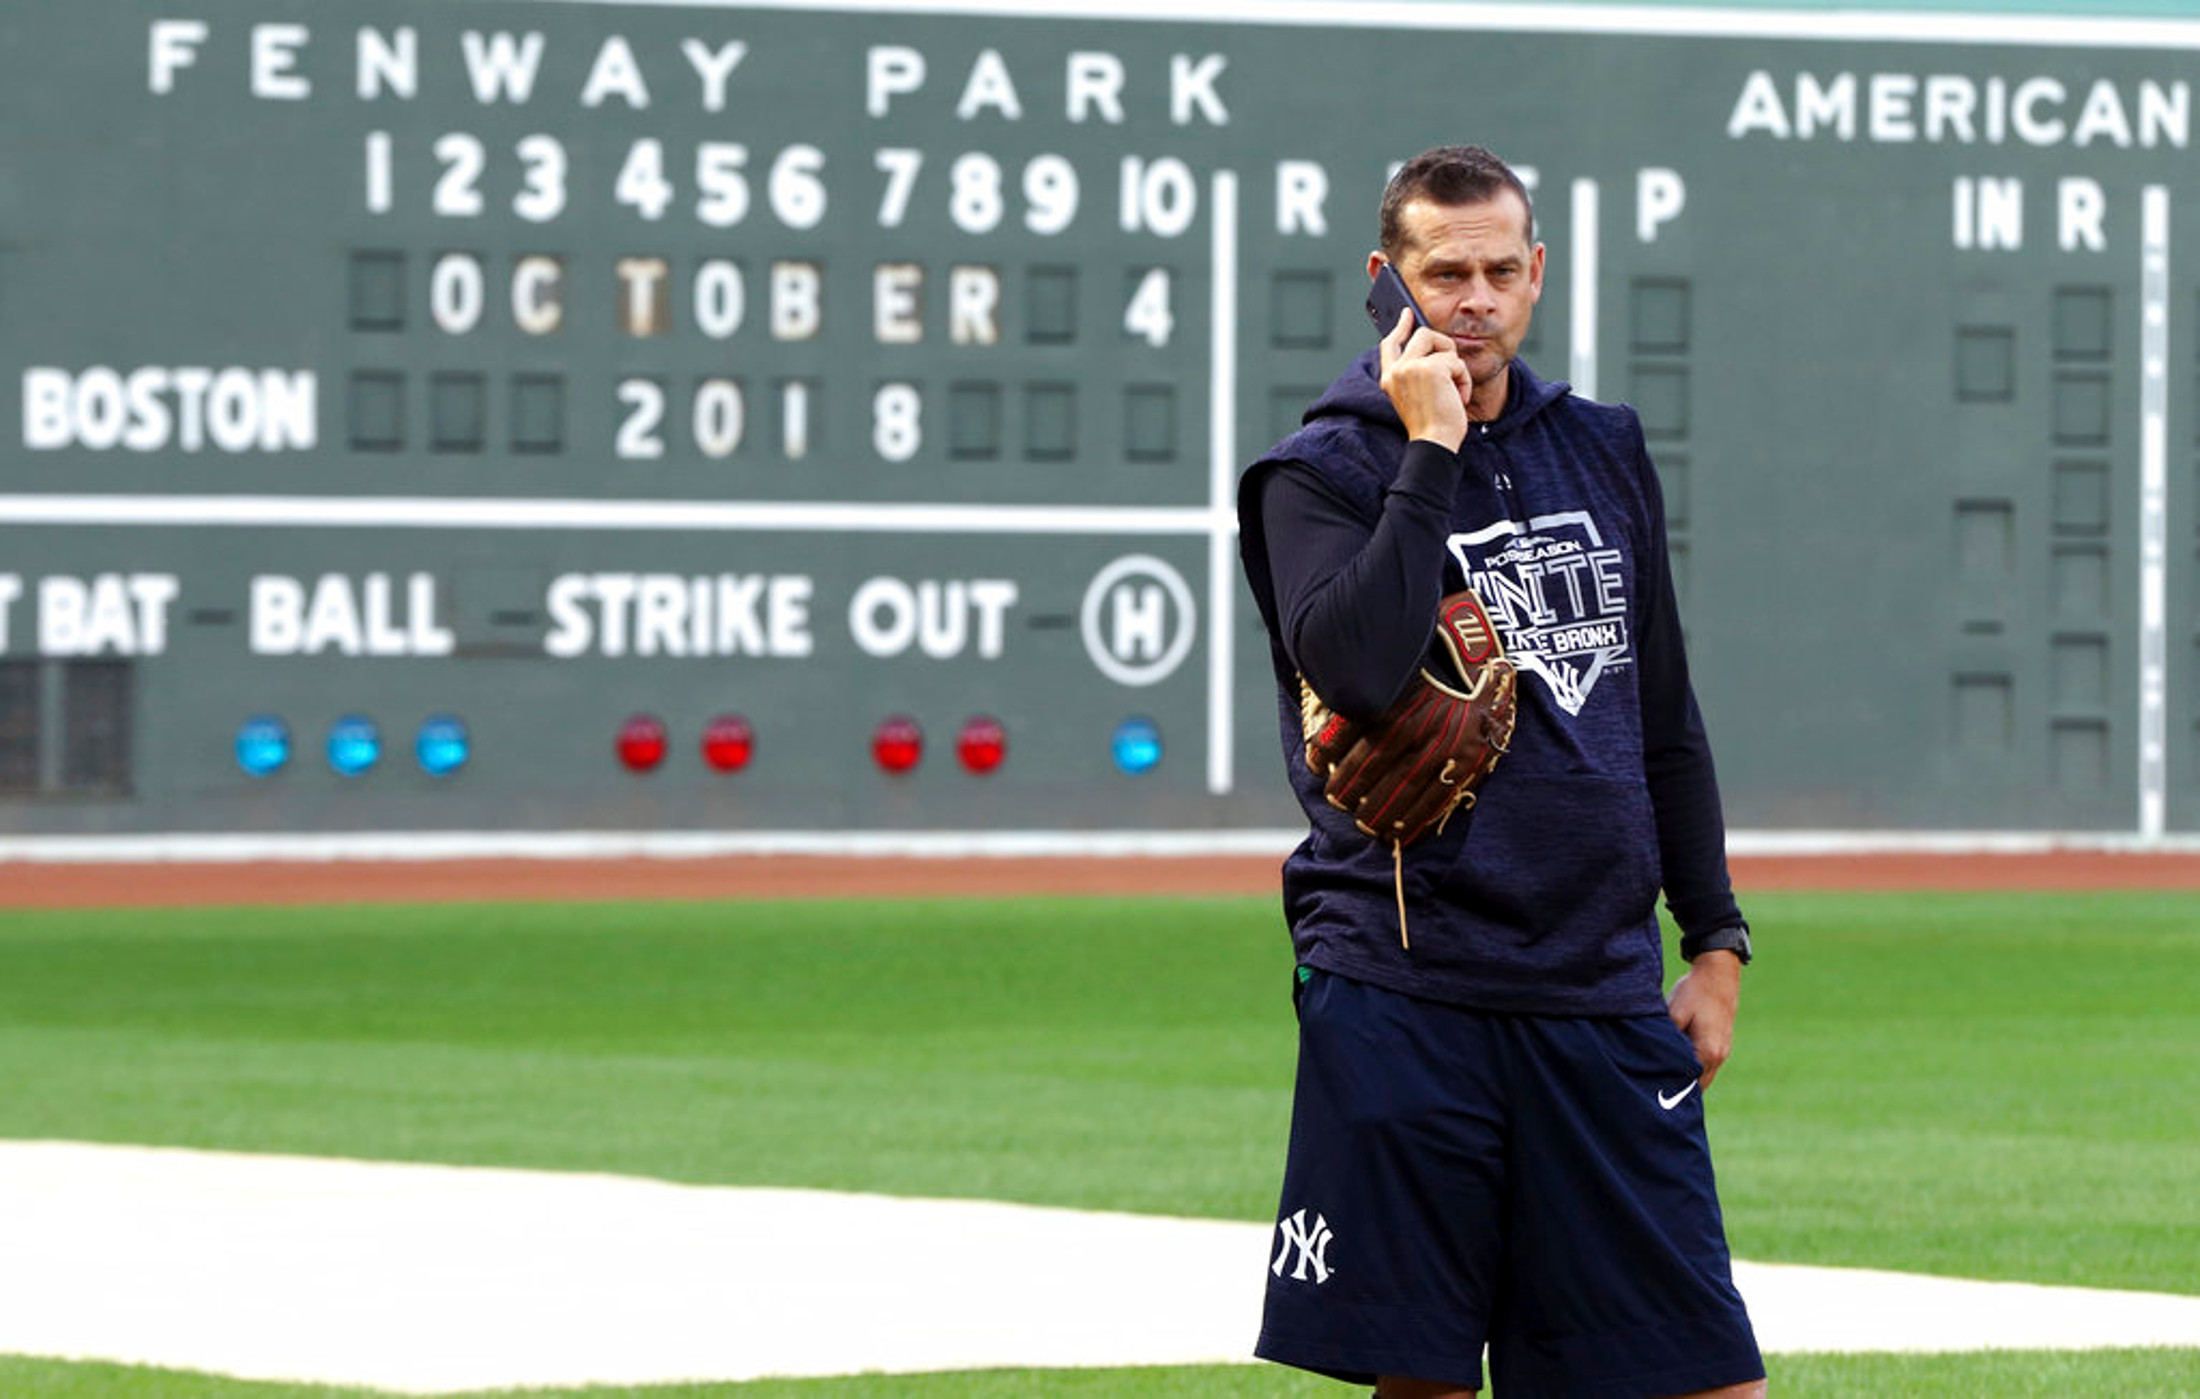 New York Yankees manager Aaron Boone talks on his phone at Fenway Park, Thursday, Oct. 4, 2018, in Boston. The Yankees are scheduled to face the Boston Red Sox in Game 1 of the AL Division Series on Friday. (AP Photo/Elise Amendola)